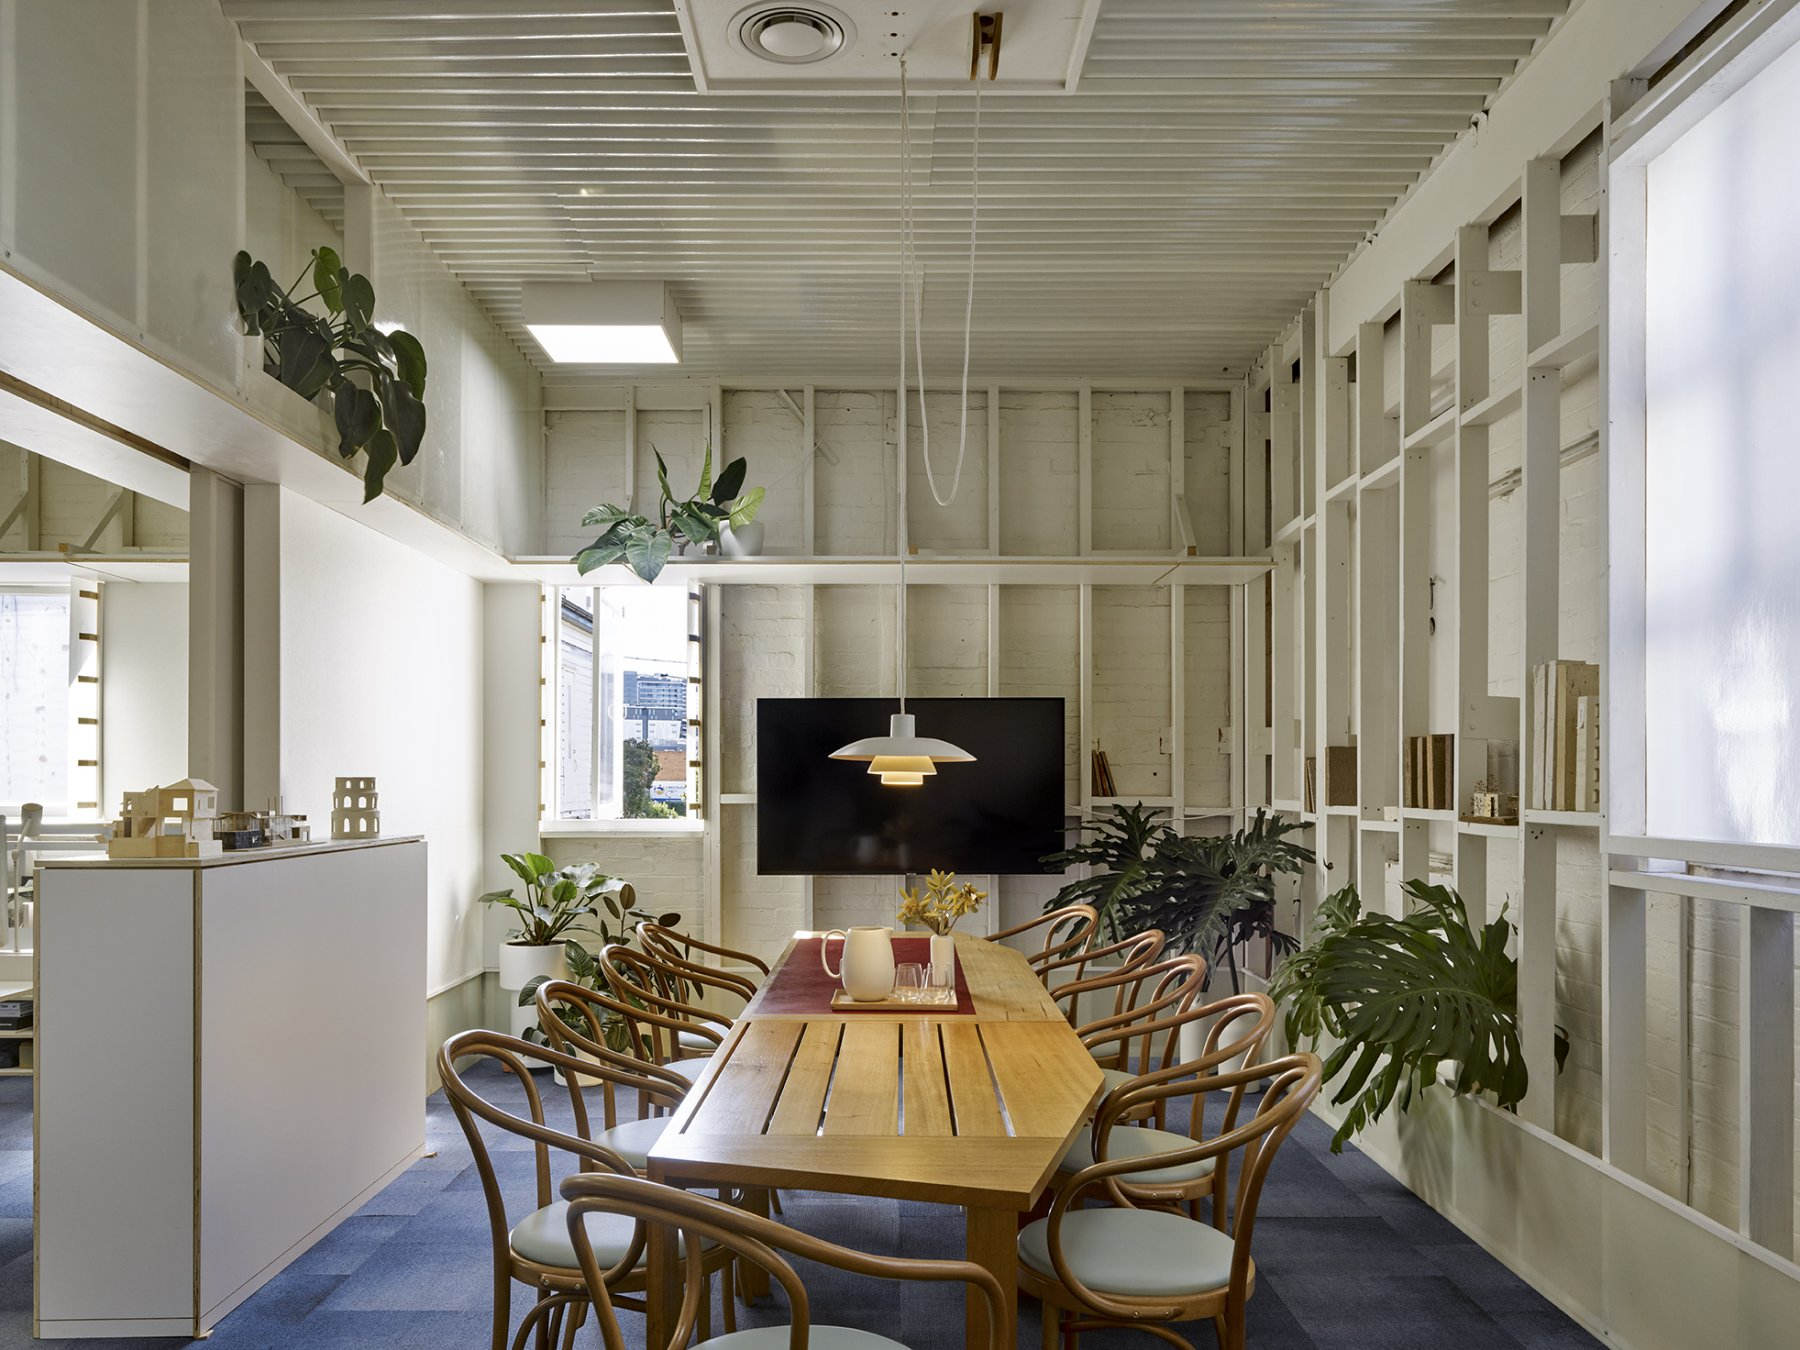 181 Robertson St, Cavill Architects, Commercial Architecture Brisbane, Commercial Architects